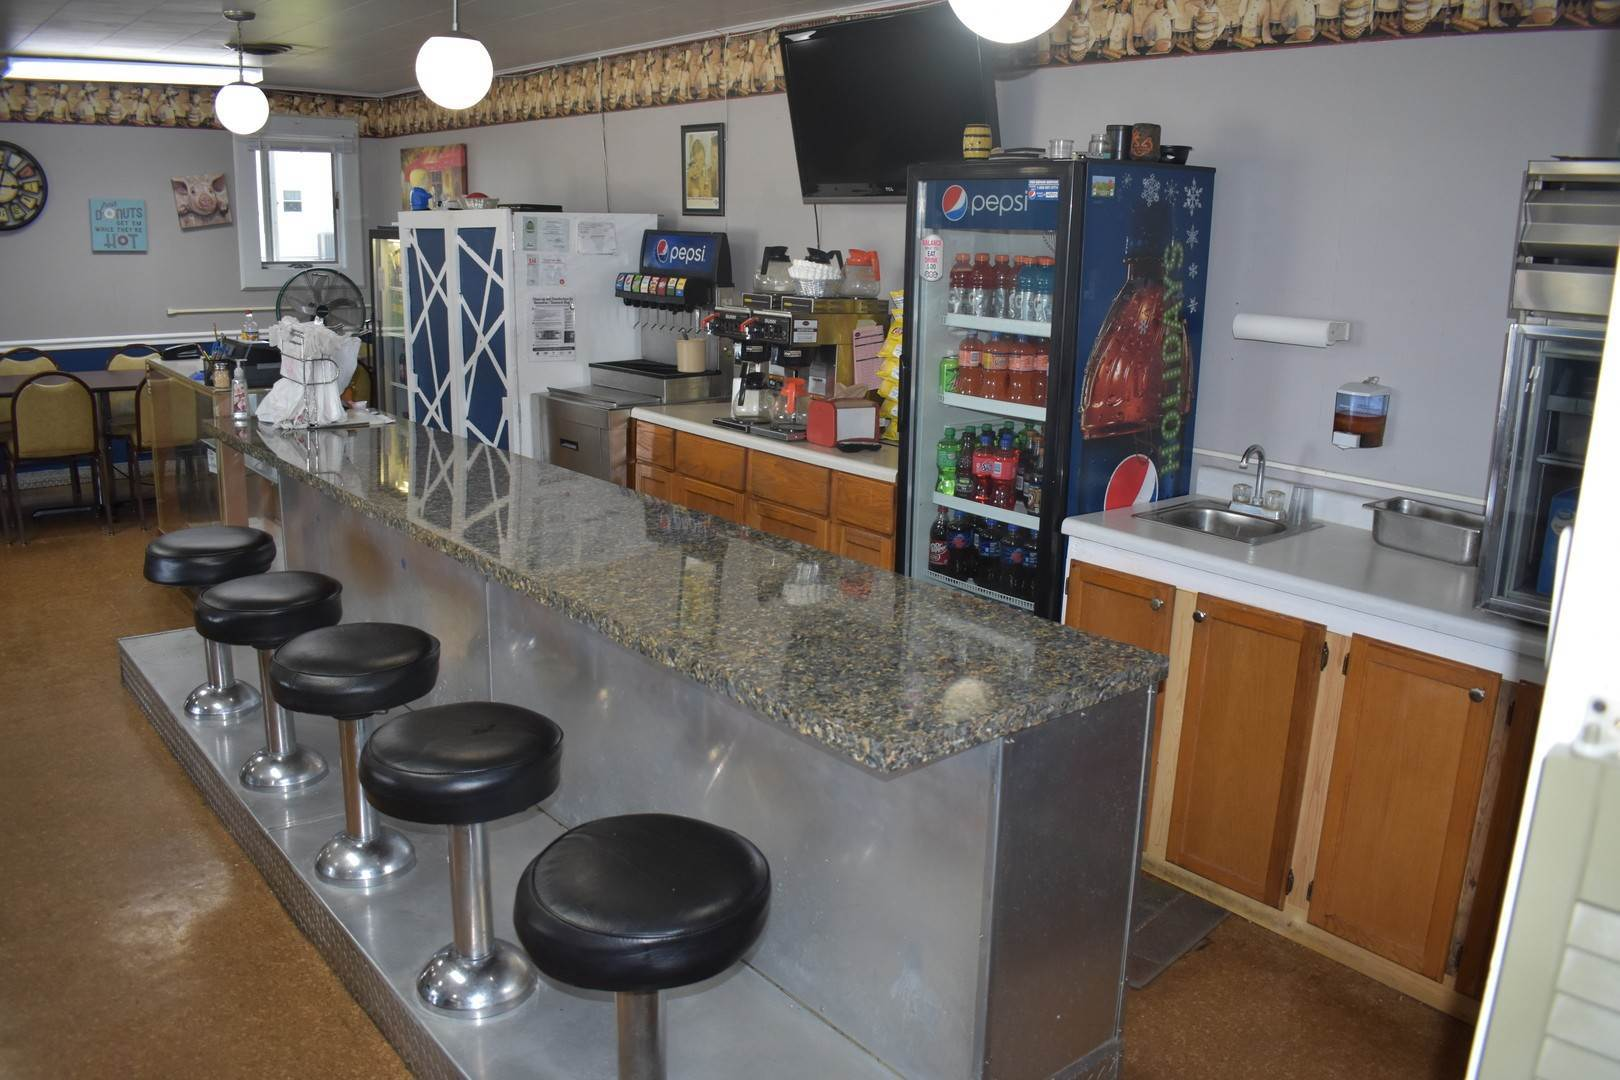 Business Opportunity for Sale at 205 N State Route 54 Roberts, Illinois 60962 United States